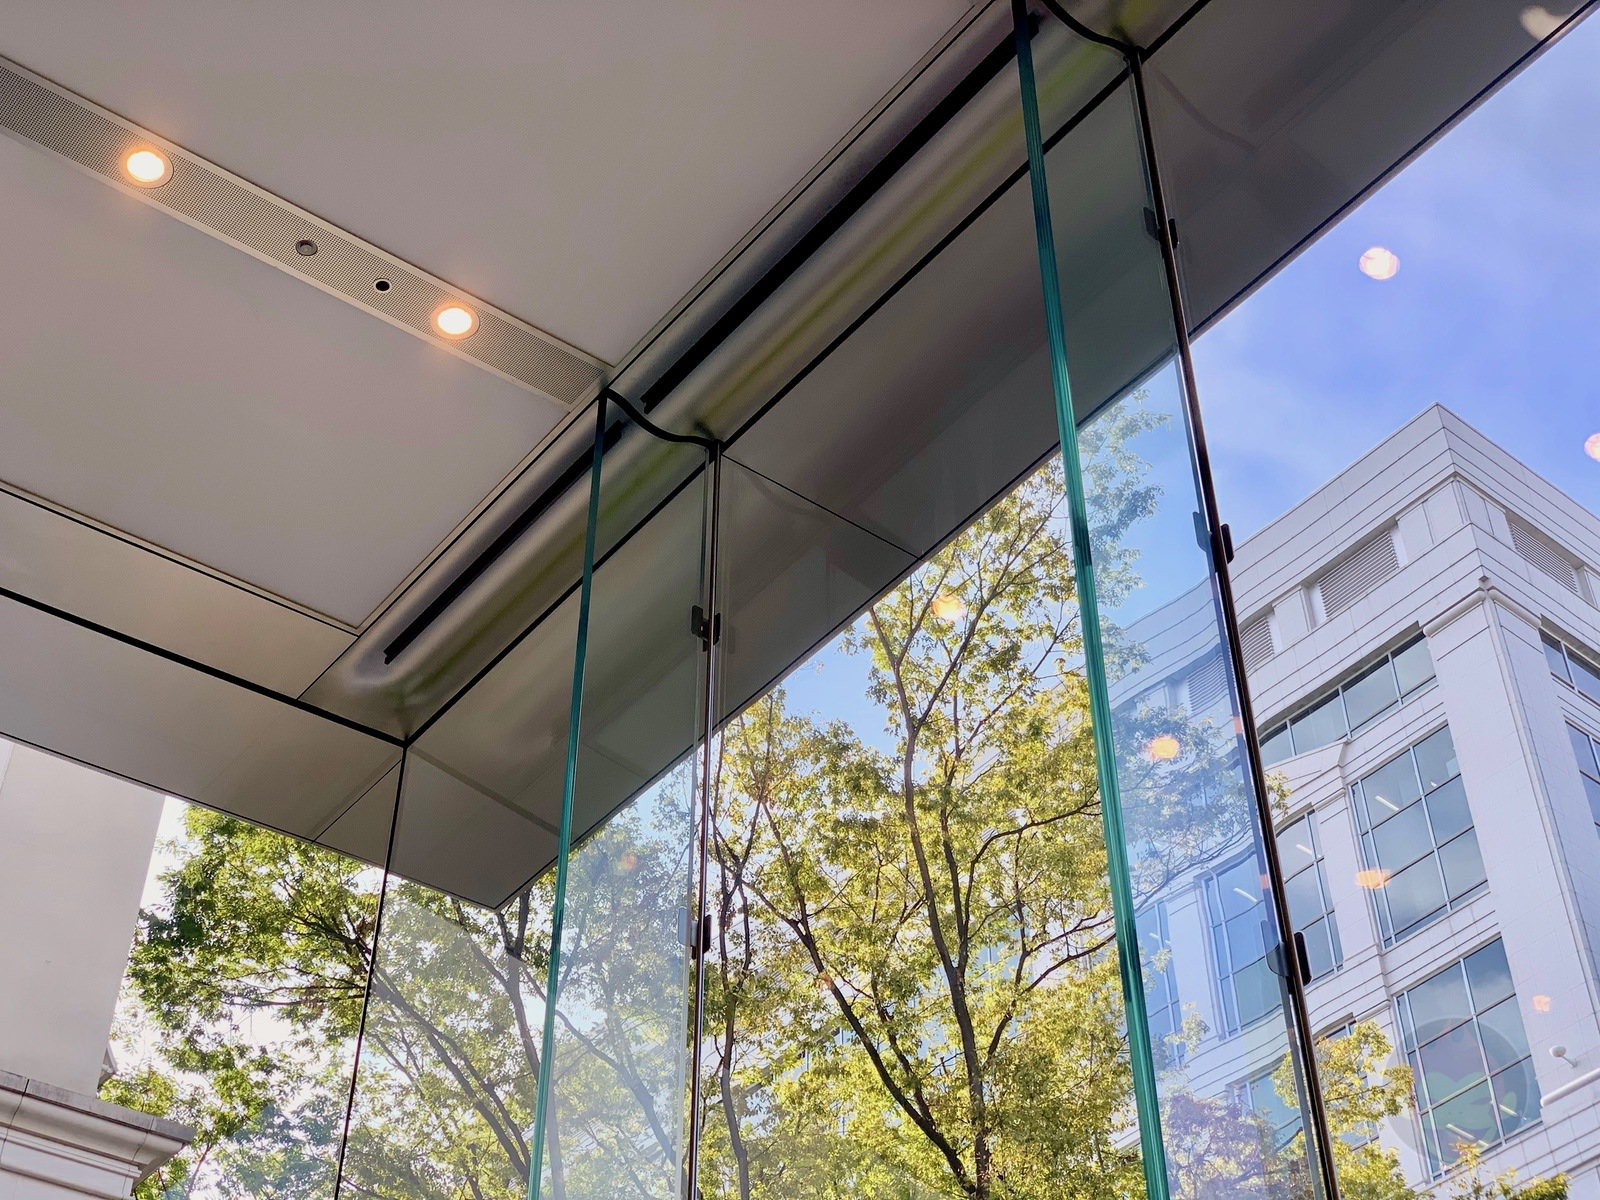 Apple Omotesando Video Wall Renewall 19